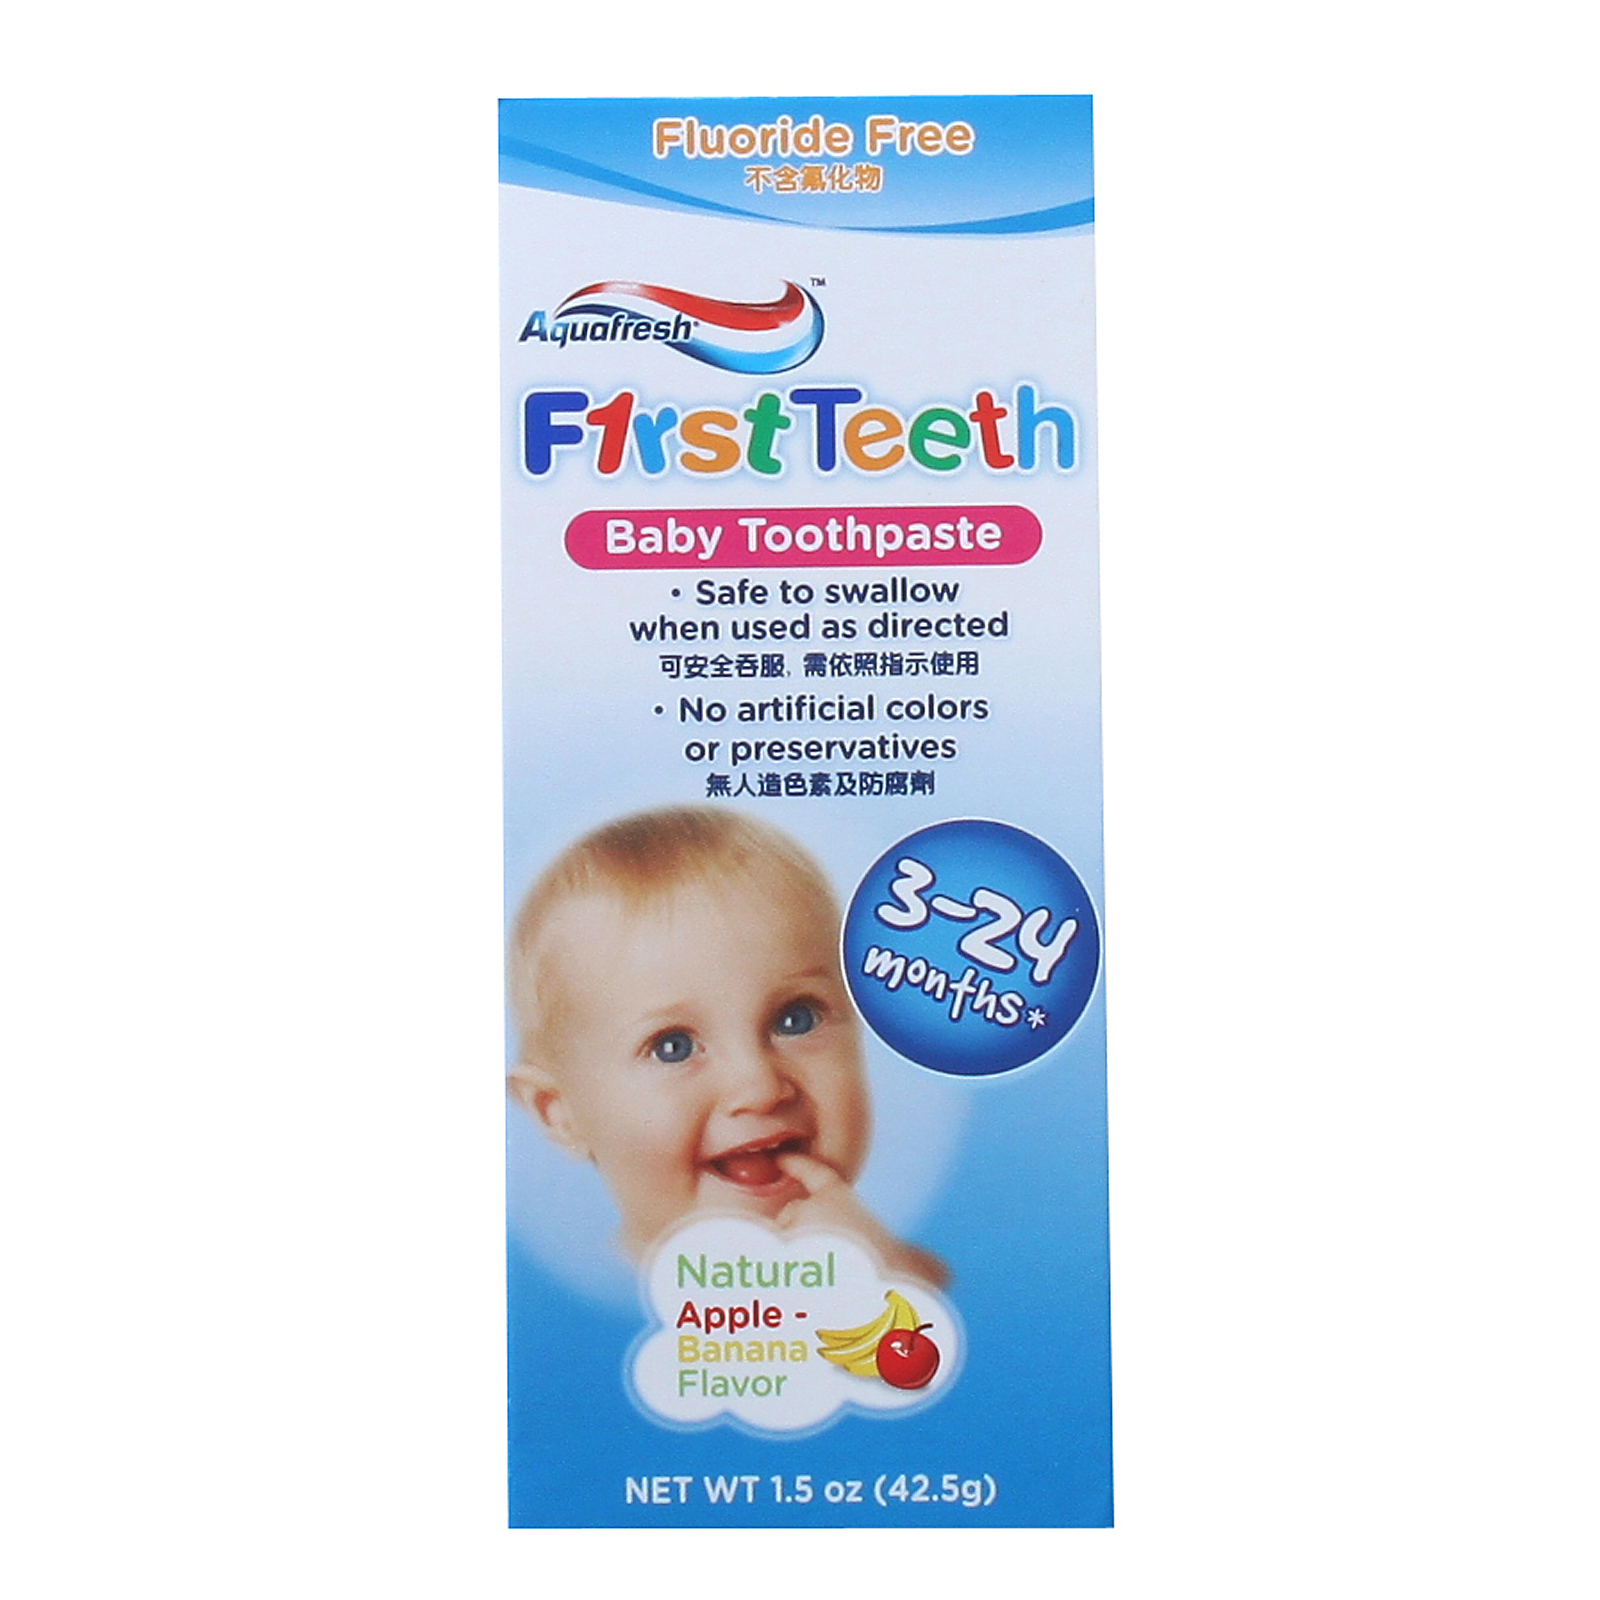 Aquafresh First Teeth Baby Toothpaste 3 24months Reviews